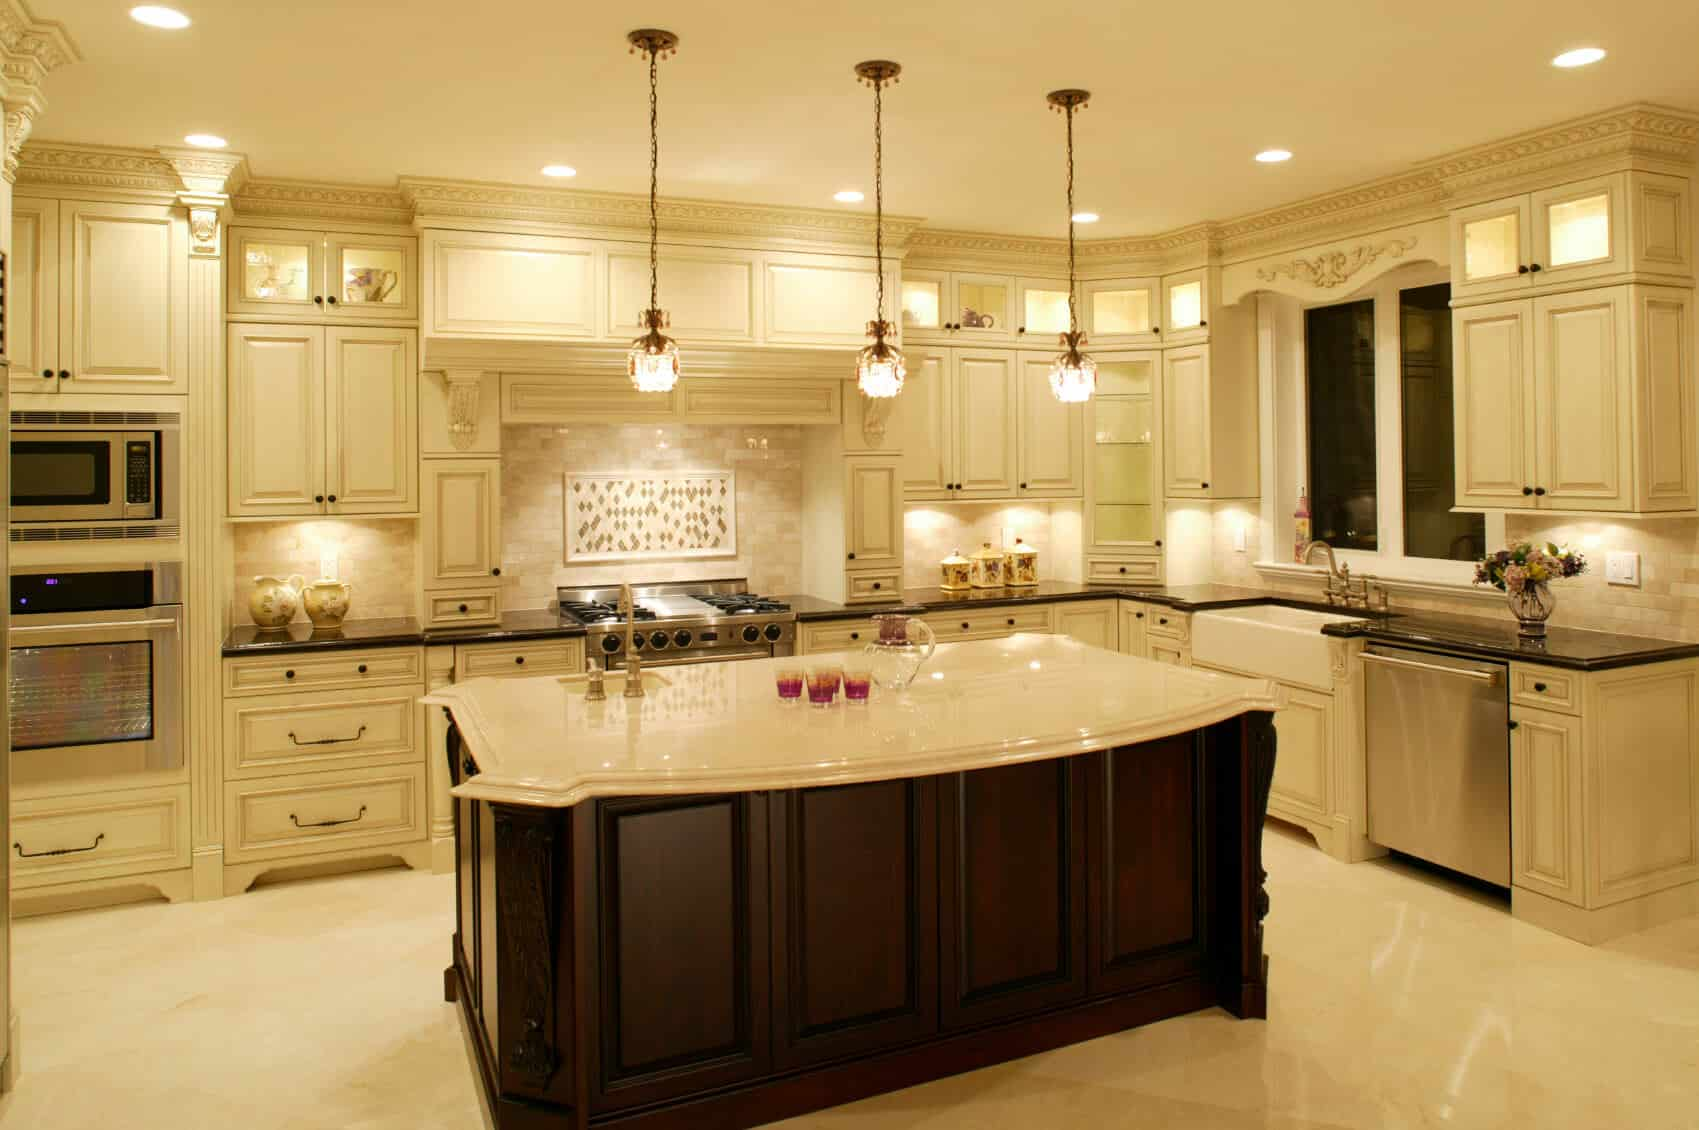 Luxurious kitchen awash in light marble tones, dominated by large dark wood island with filigreed siding and built-in secondary sink.